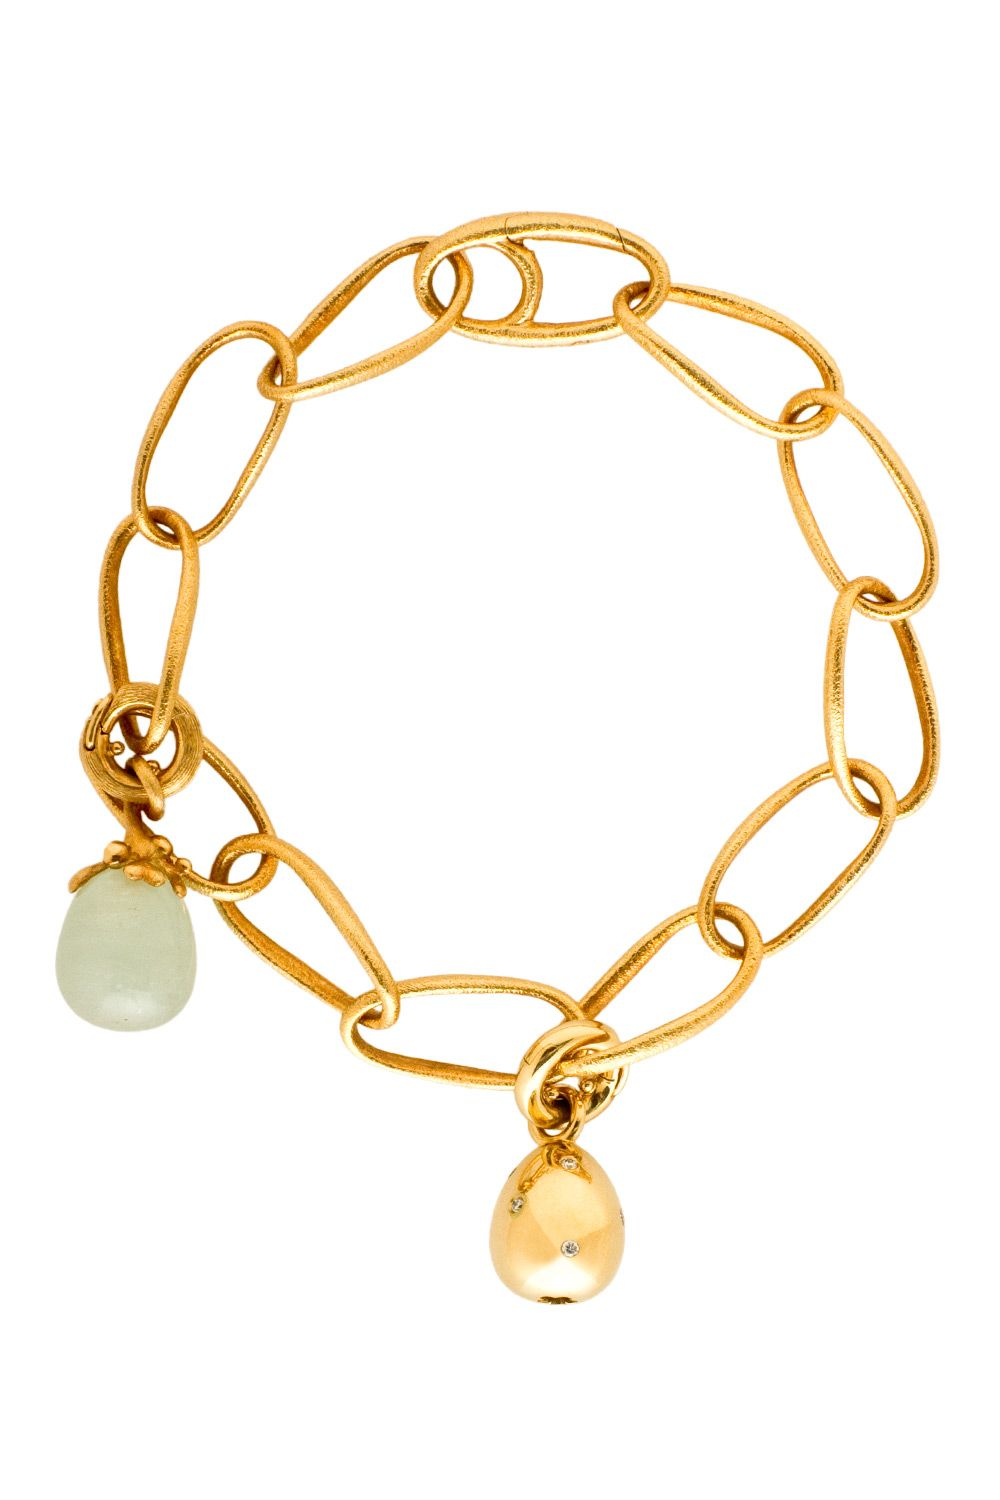 to wear - Hand Spectacular accessory metal chain bracelets video